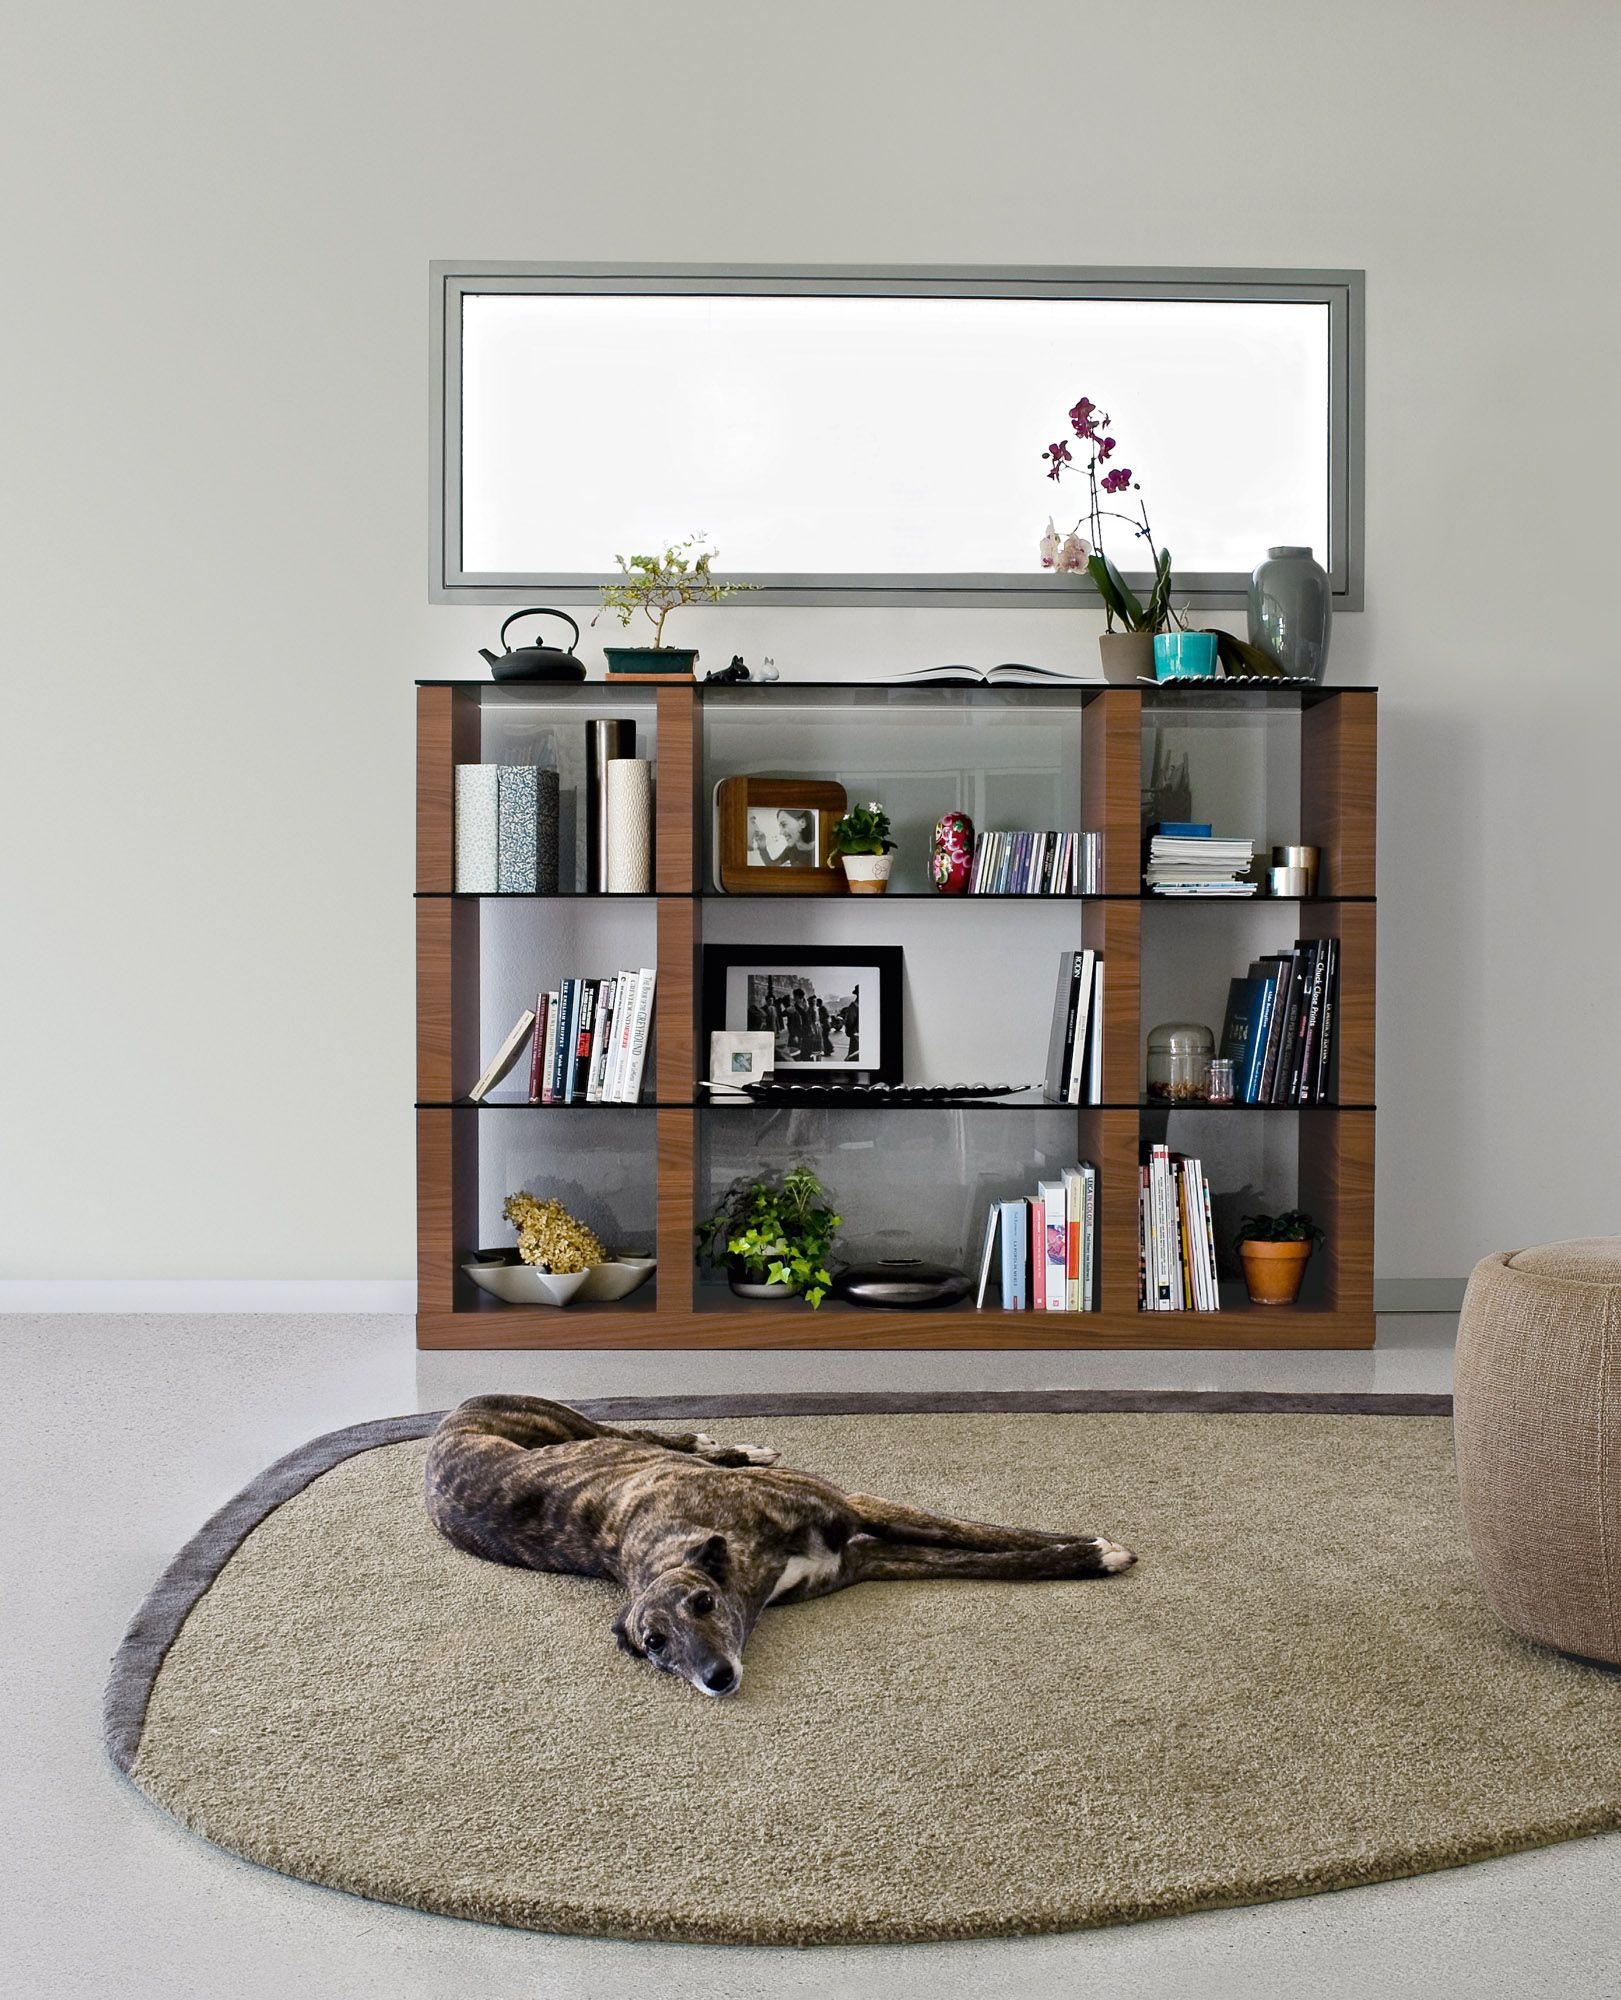 Lib bookcase is consisting of modules with vertical compartments